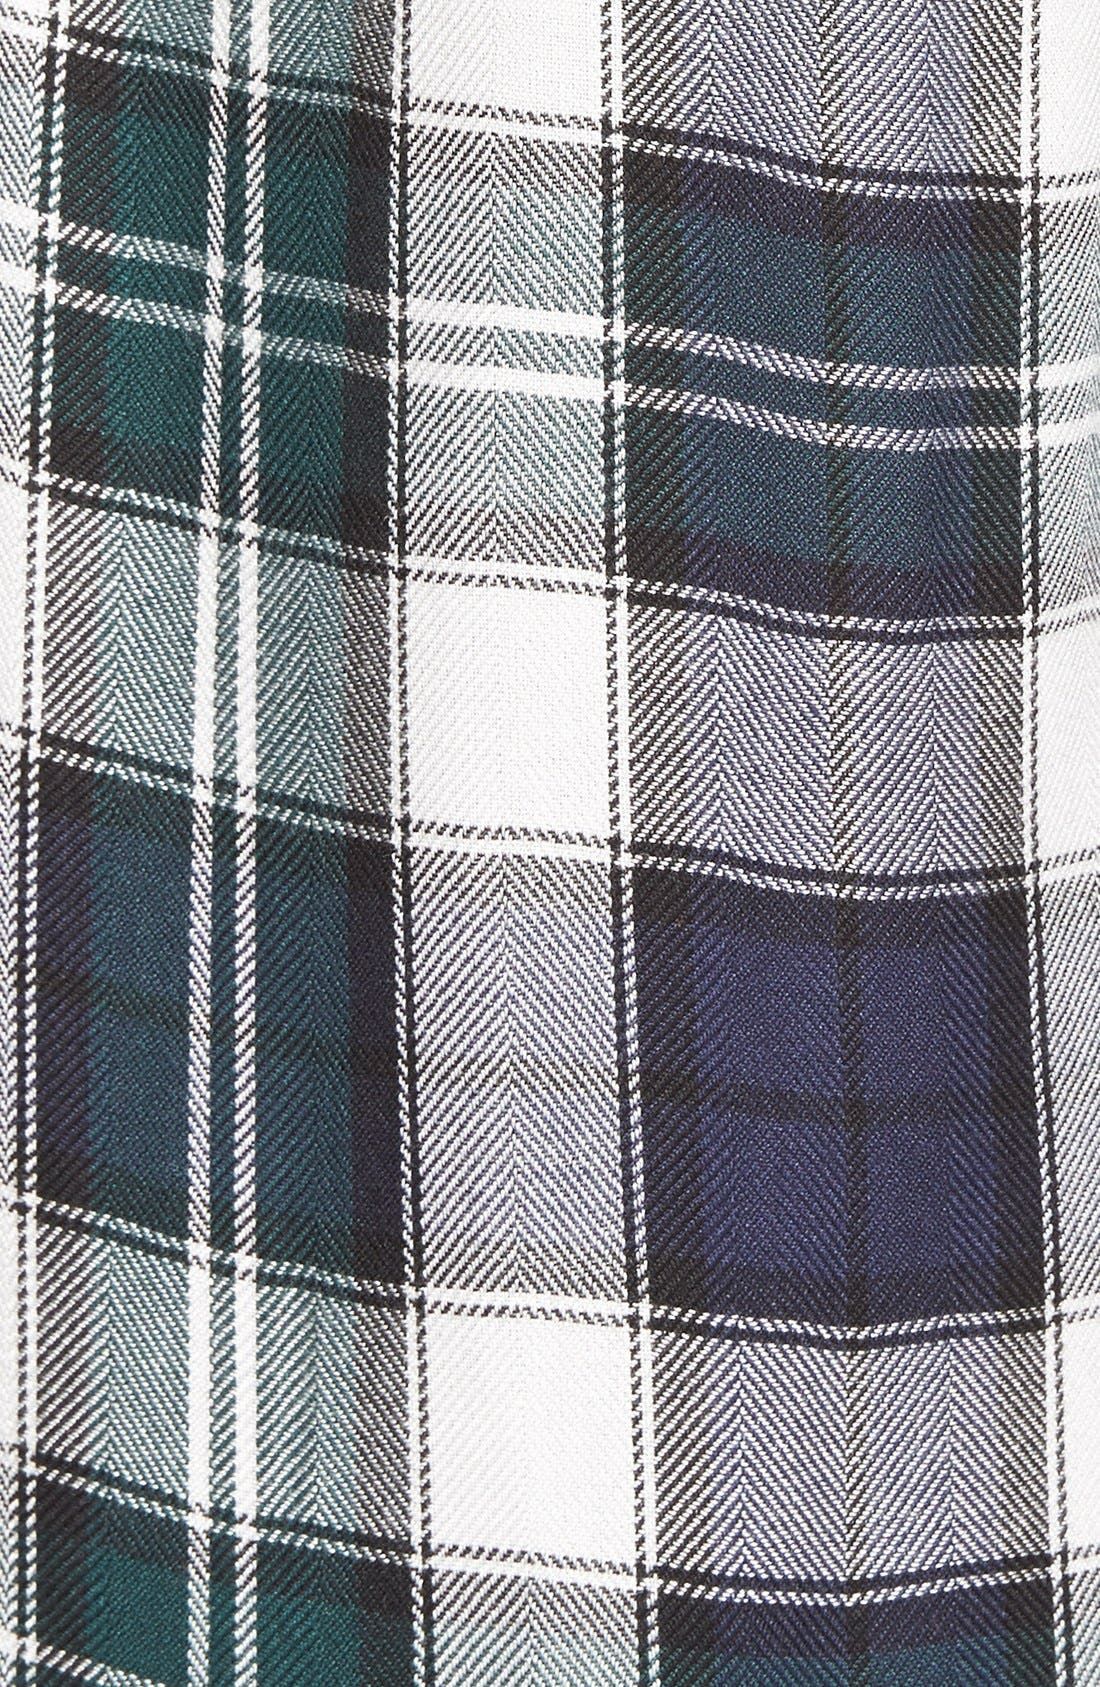 'Hunter' Plaid Shirt,                             Alternate thumbnail 2, color,                             300